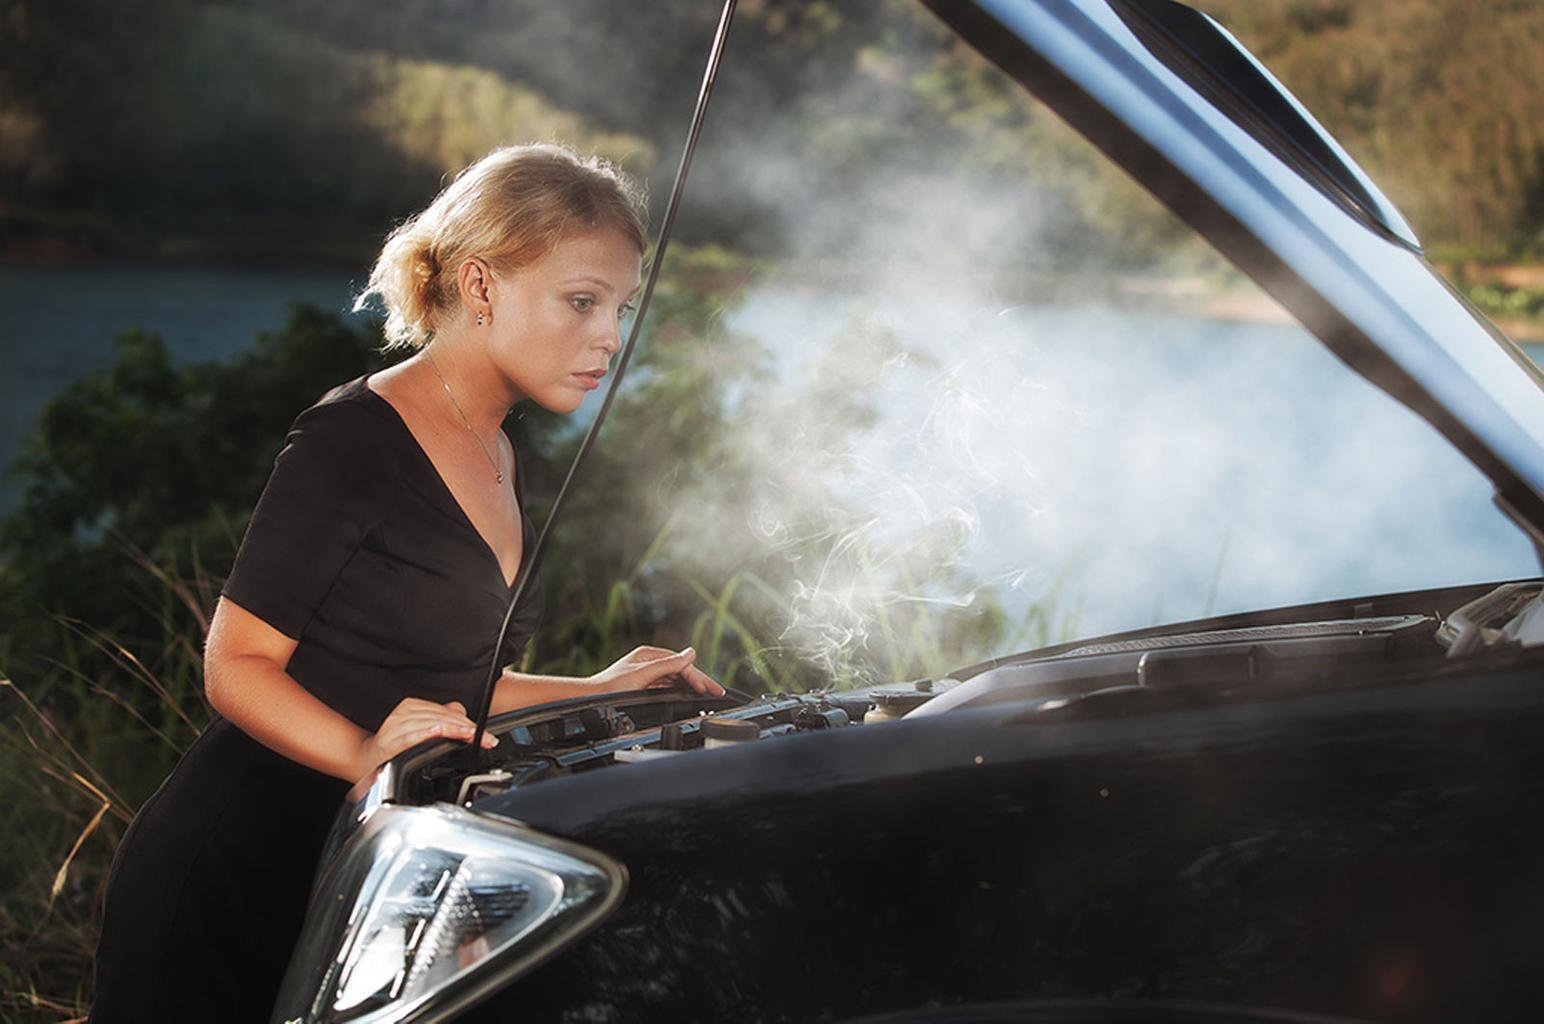 Woman and overheating car